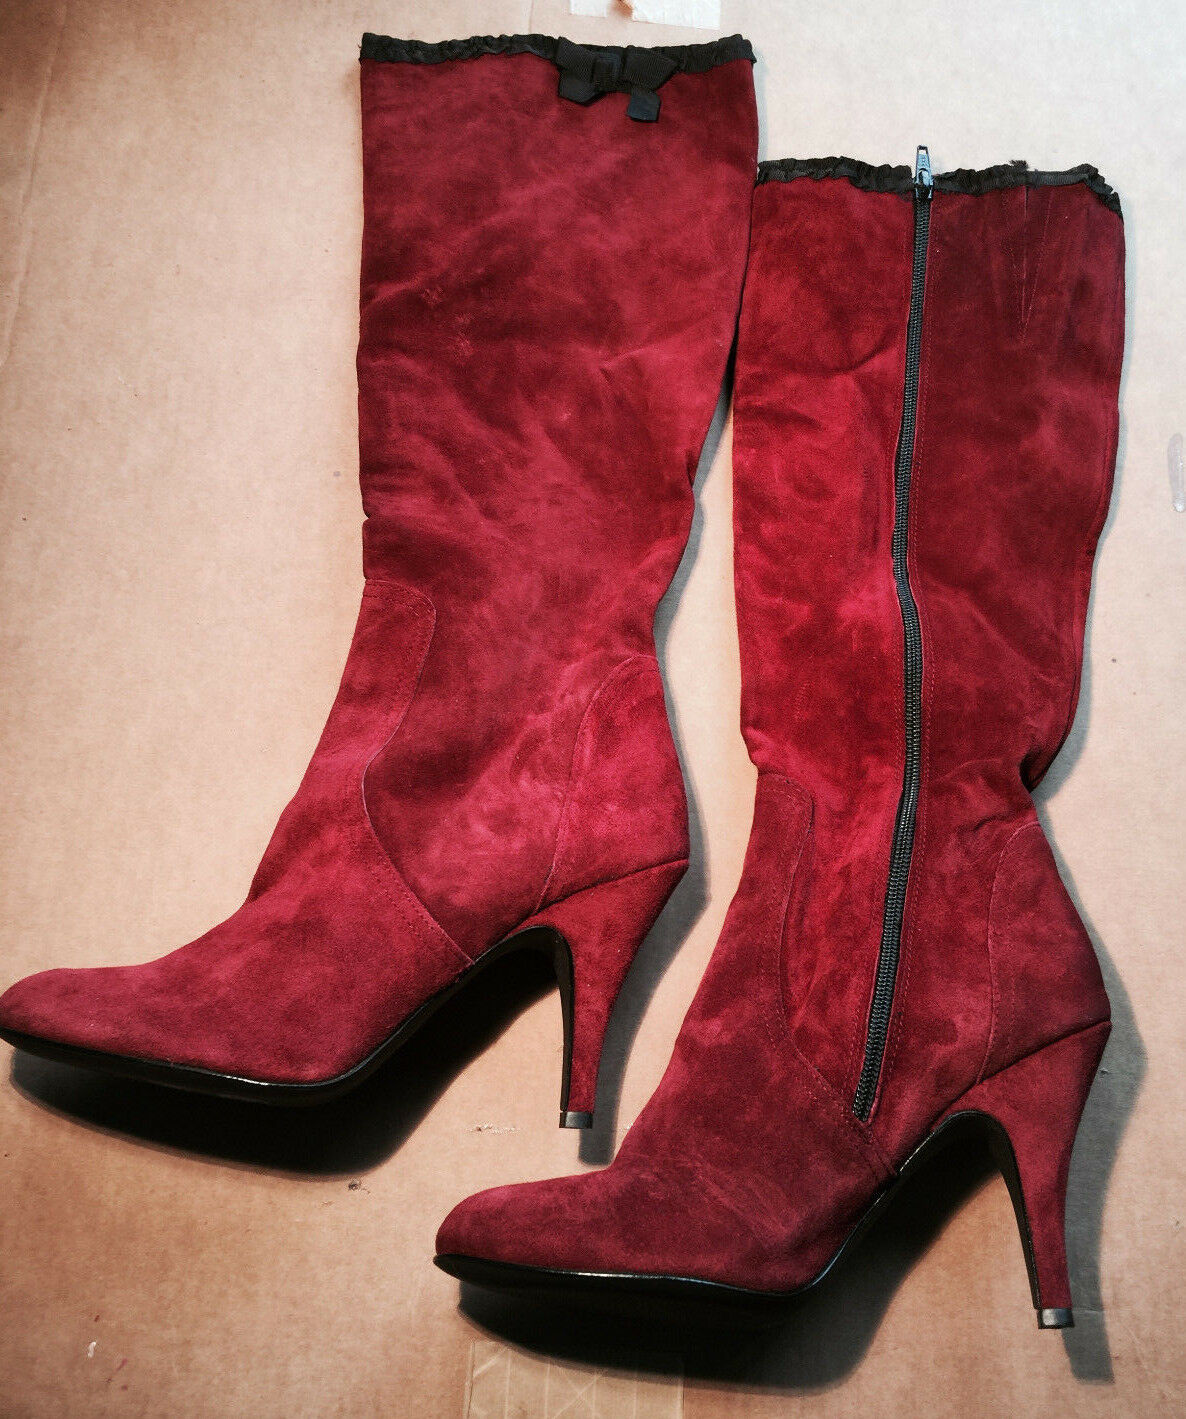 Italian suede red leather boots